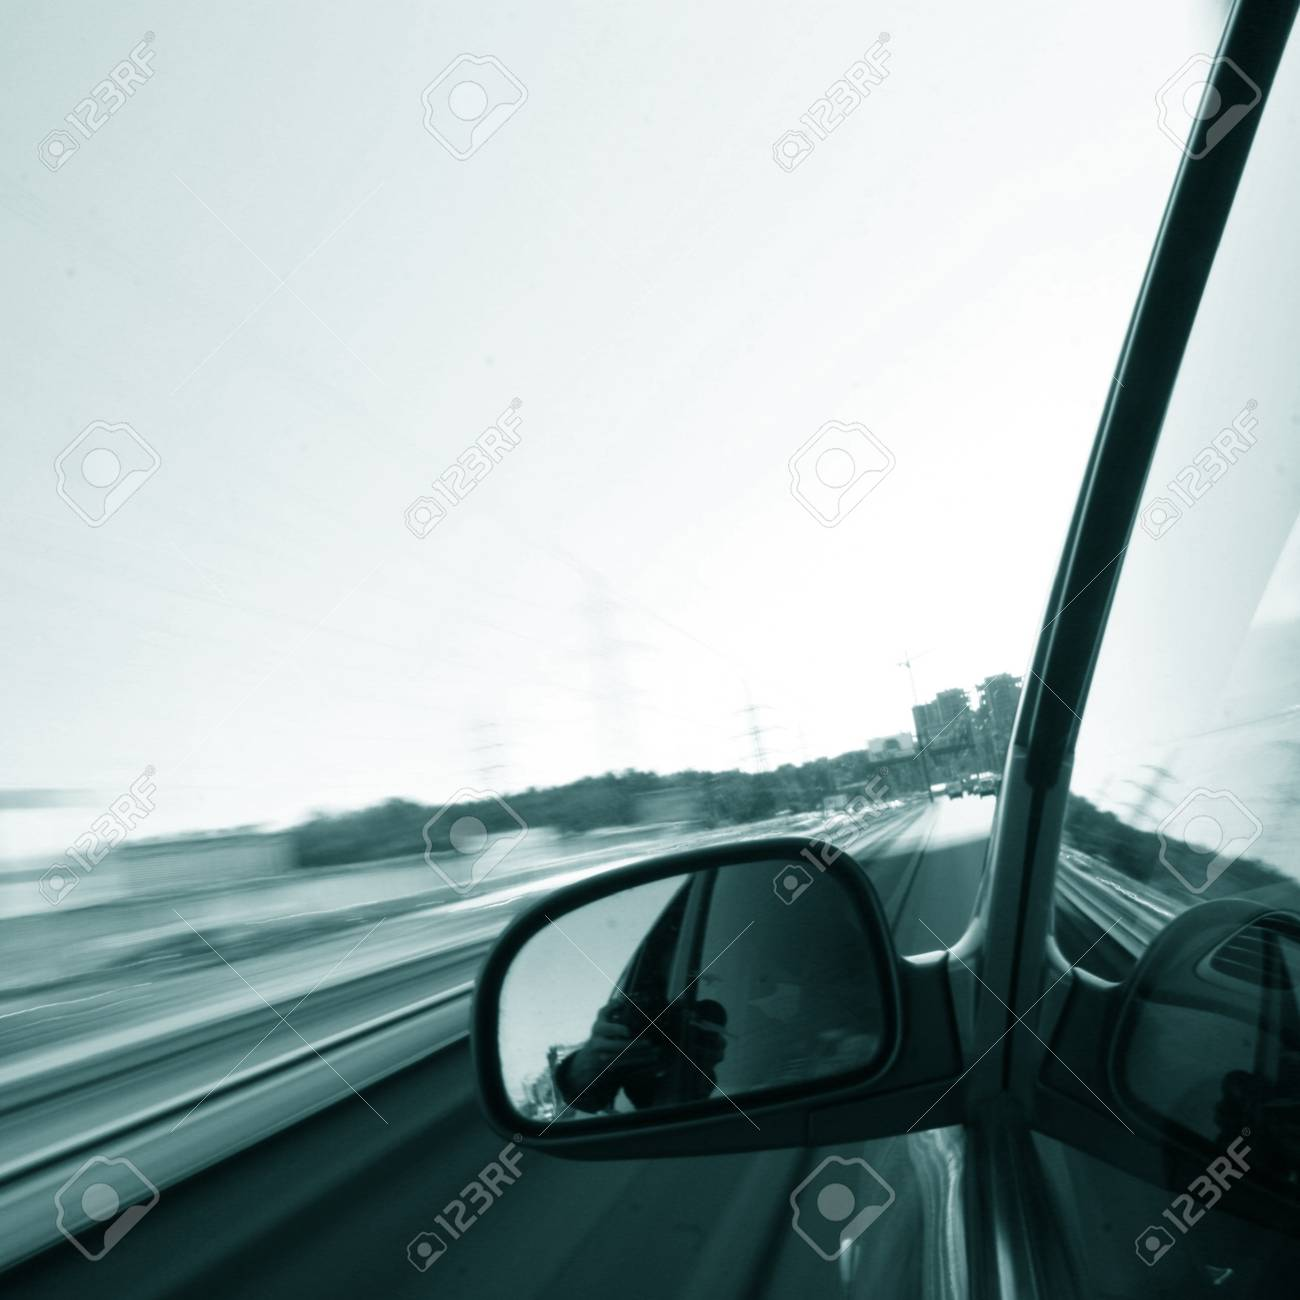 speed drive blurred transportation background Stock Photo - 10462316